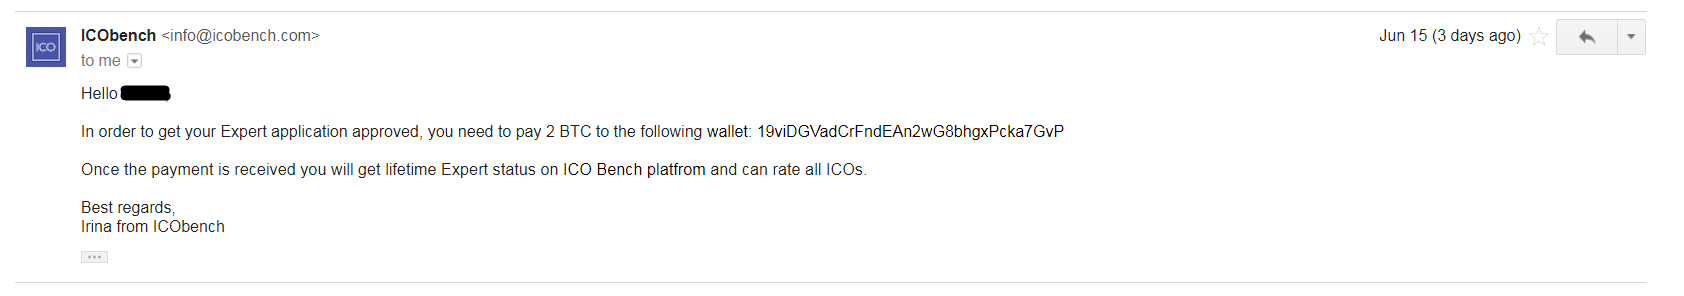 /ico-bench-exposed-7d99335a63b3 feature image